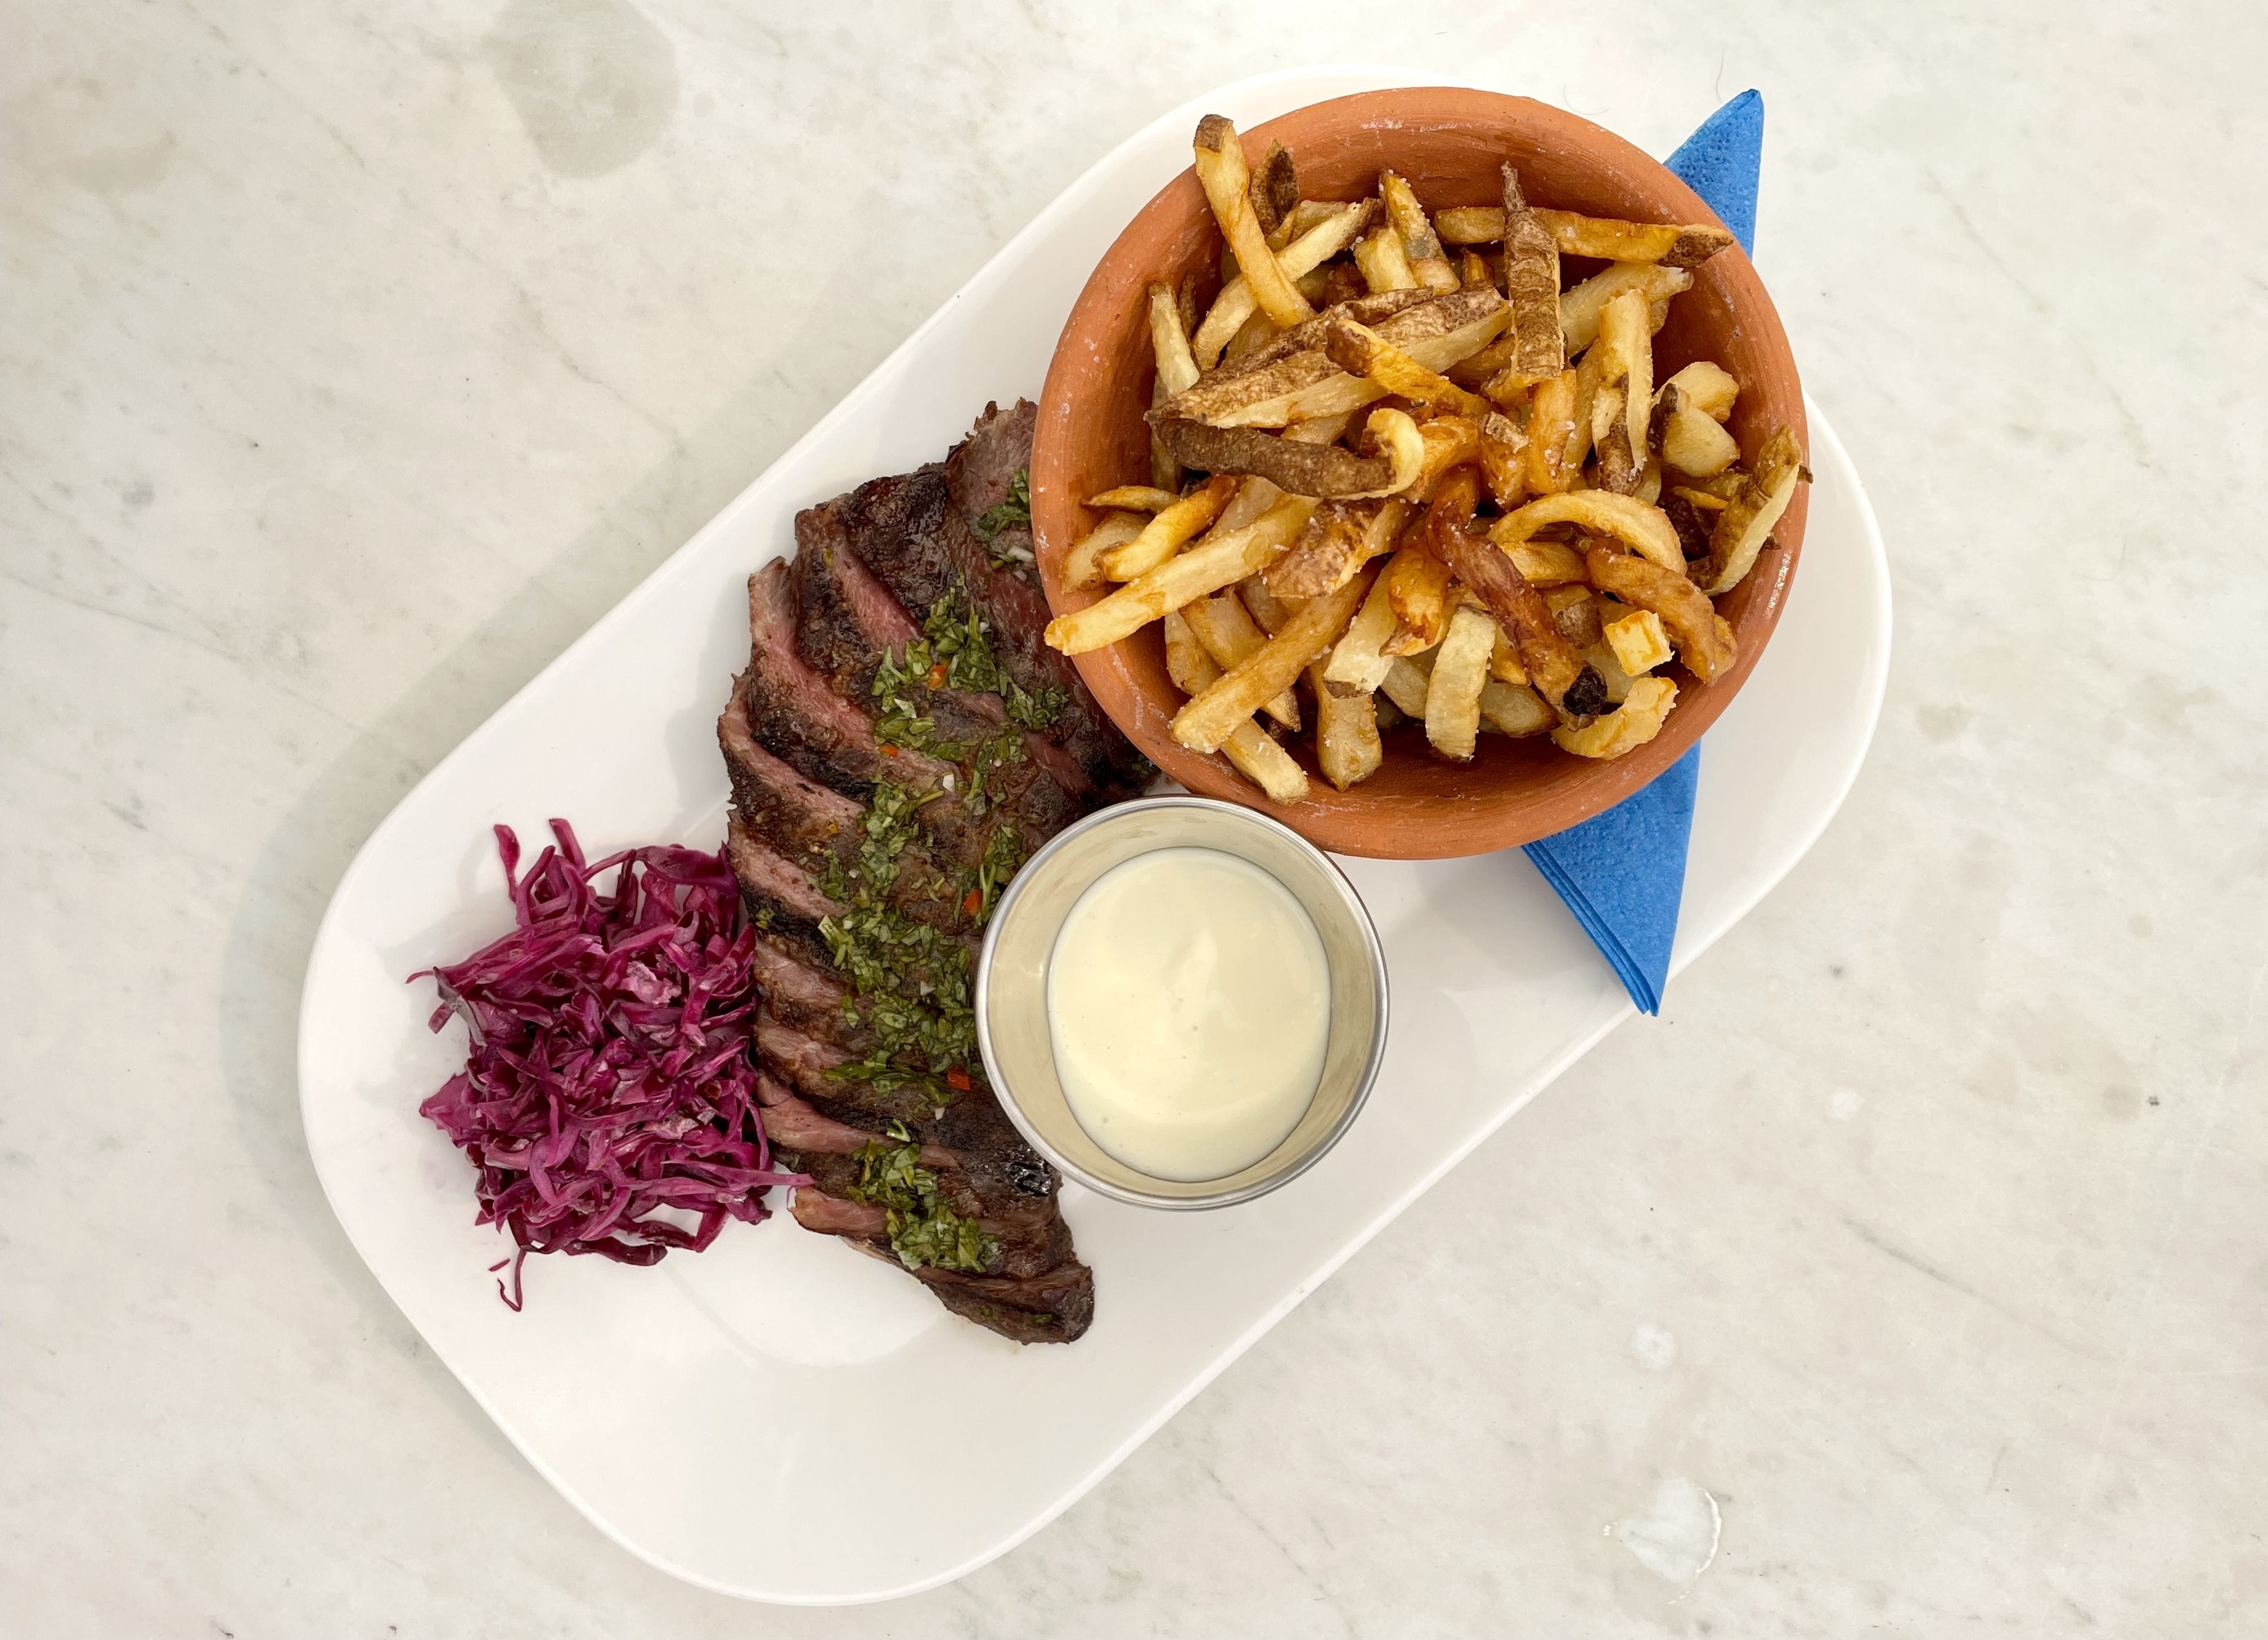 Steak Frites with red cabbage slaw